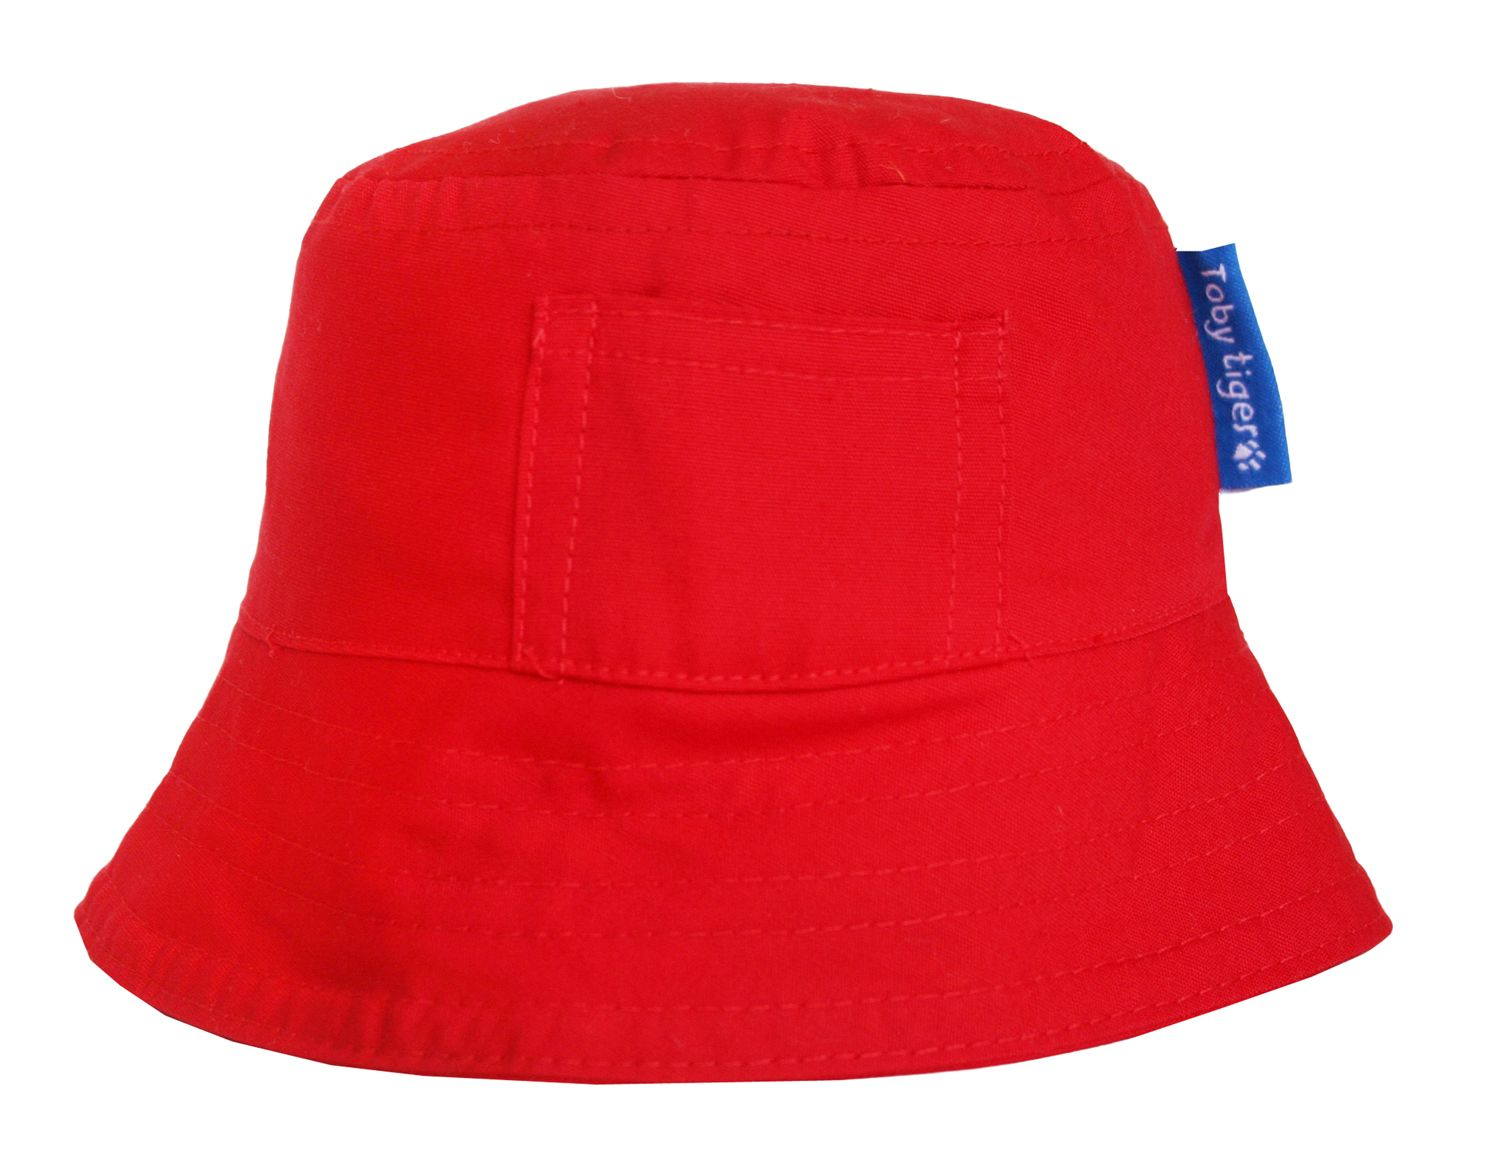 Toby Tiger Toby Tiger Boy`s canvas sunhat in red, Red